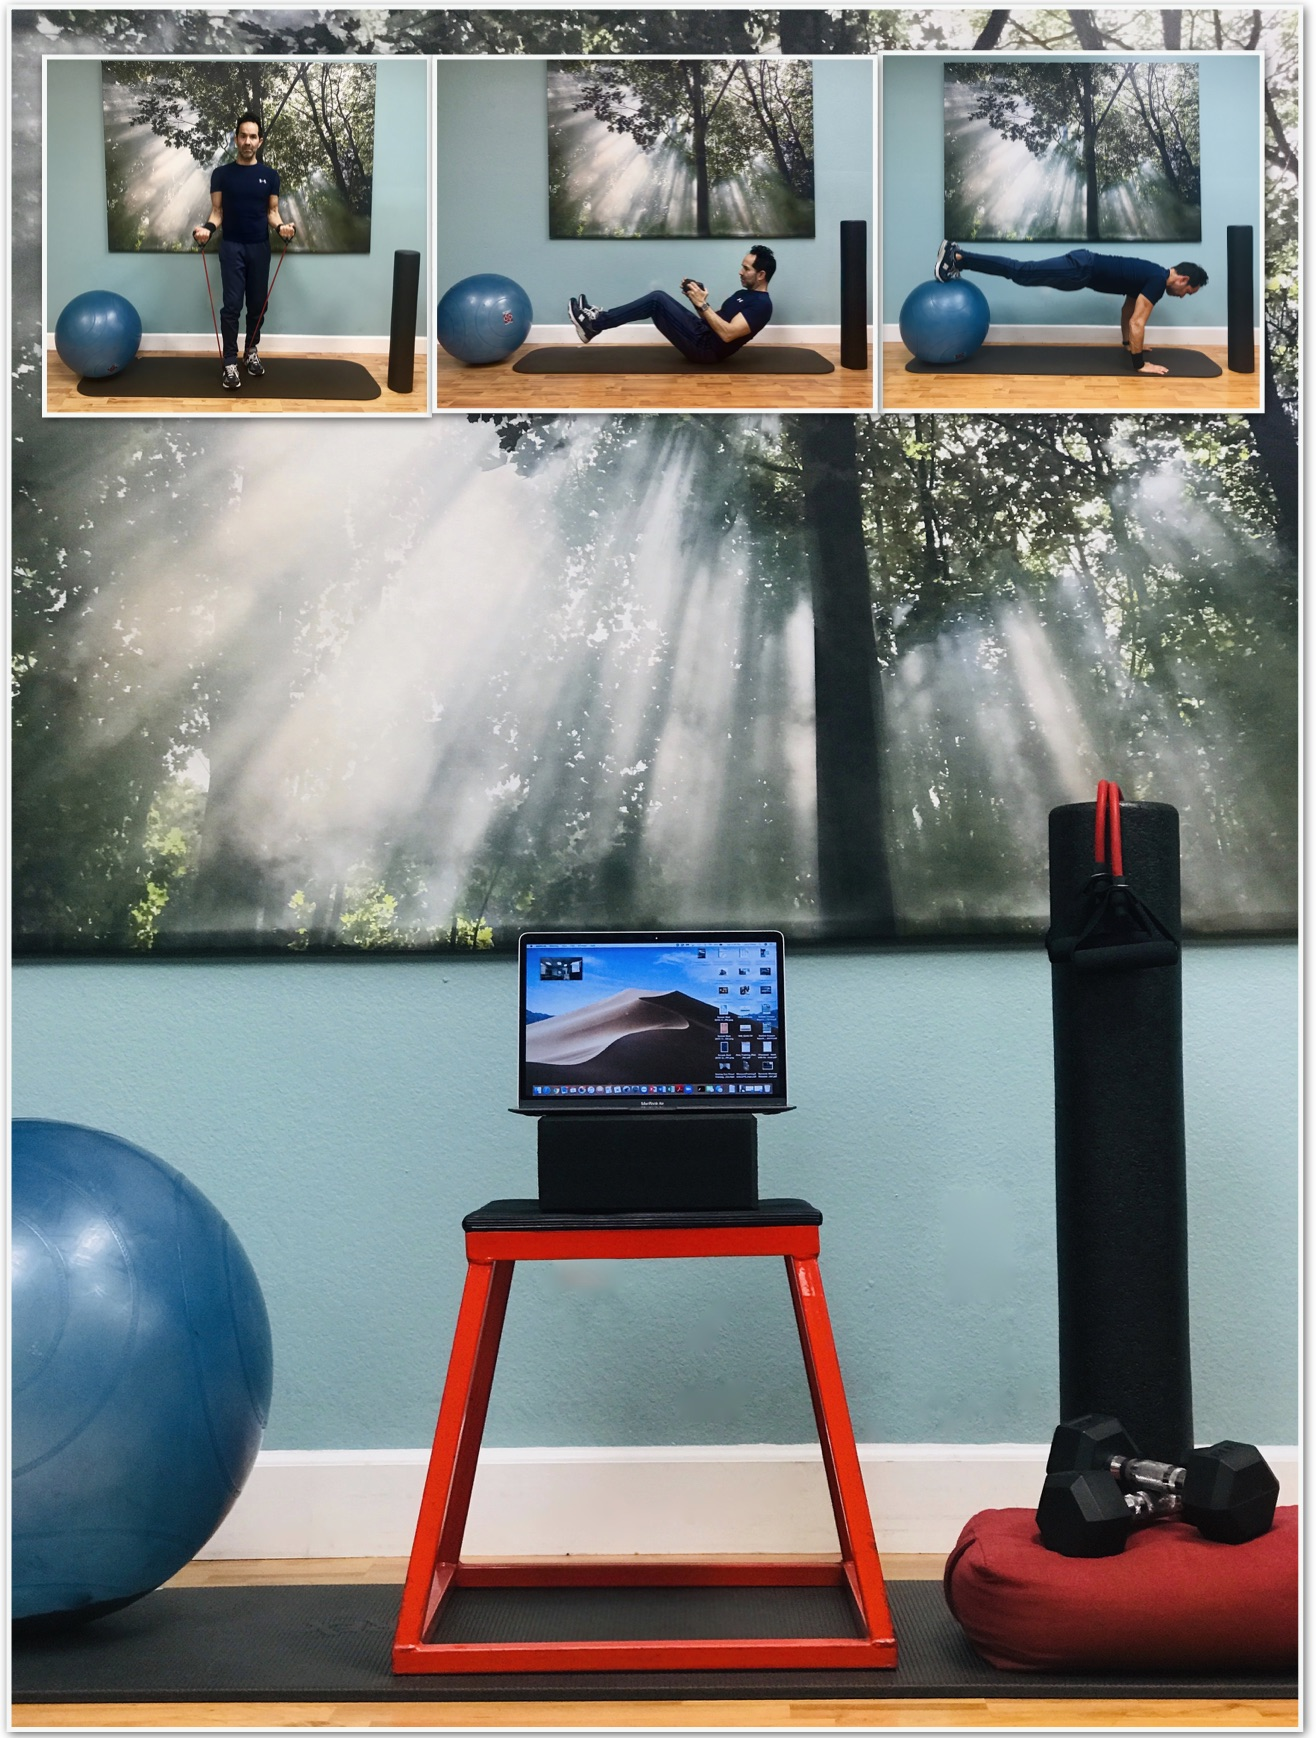 Personal training set-up for live virtual sessions.